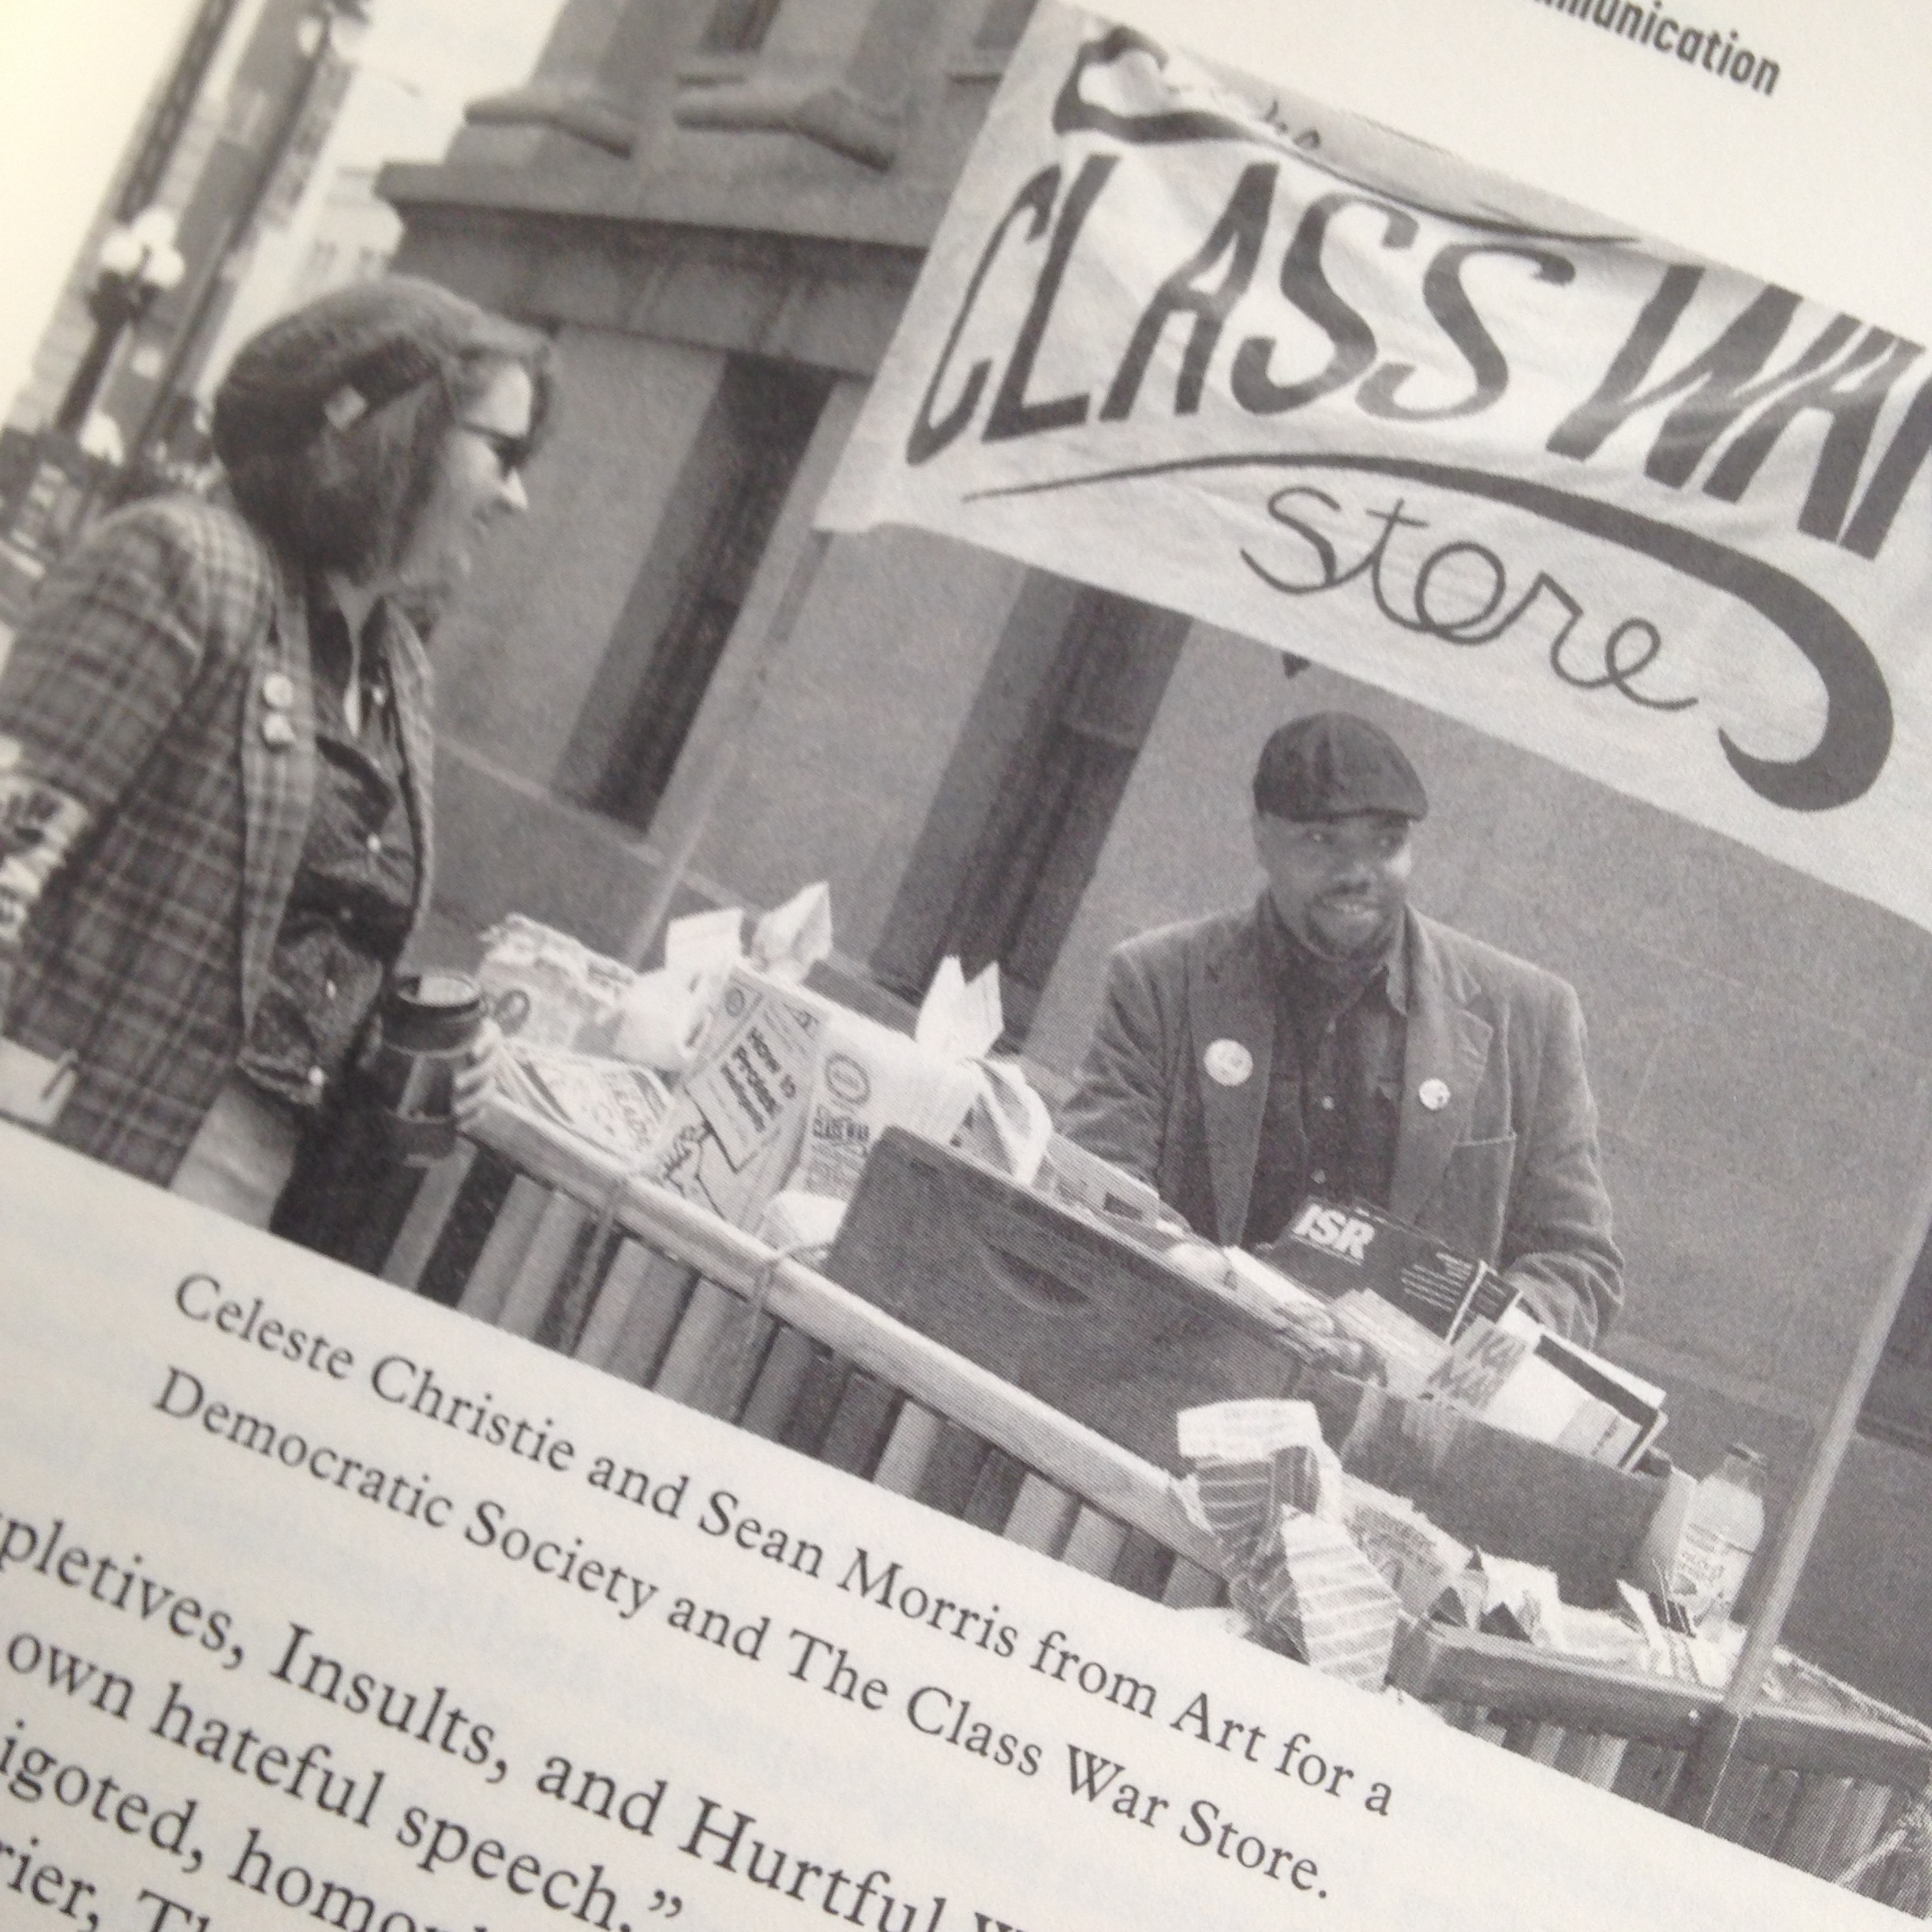 Sean and I at Mint Plaza during the Cries' Market Day, from the book